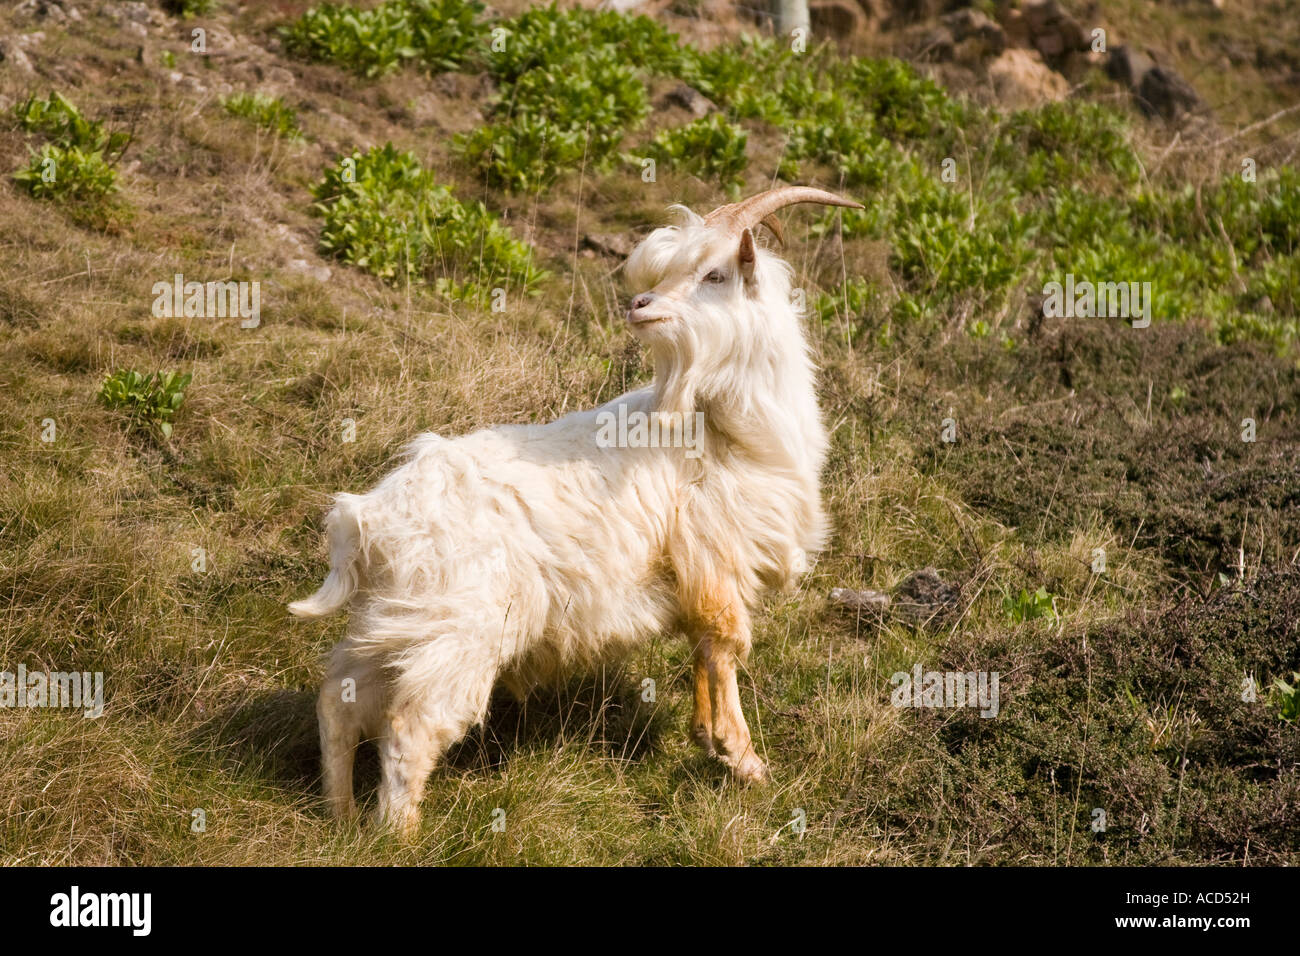 The Great Orme (Pen-y-Gogarth) Kashmiri mountain goat whose ancestors once roamed the mountains of Northern India - Stock Image